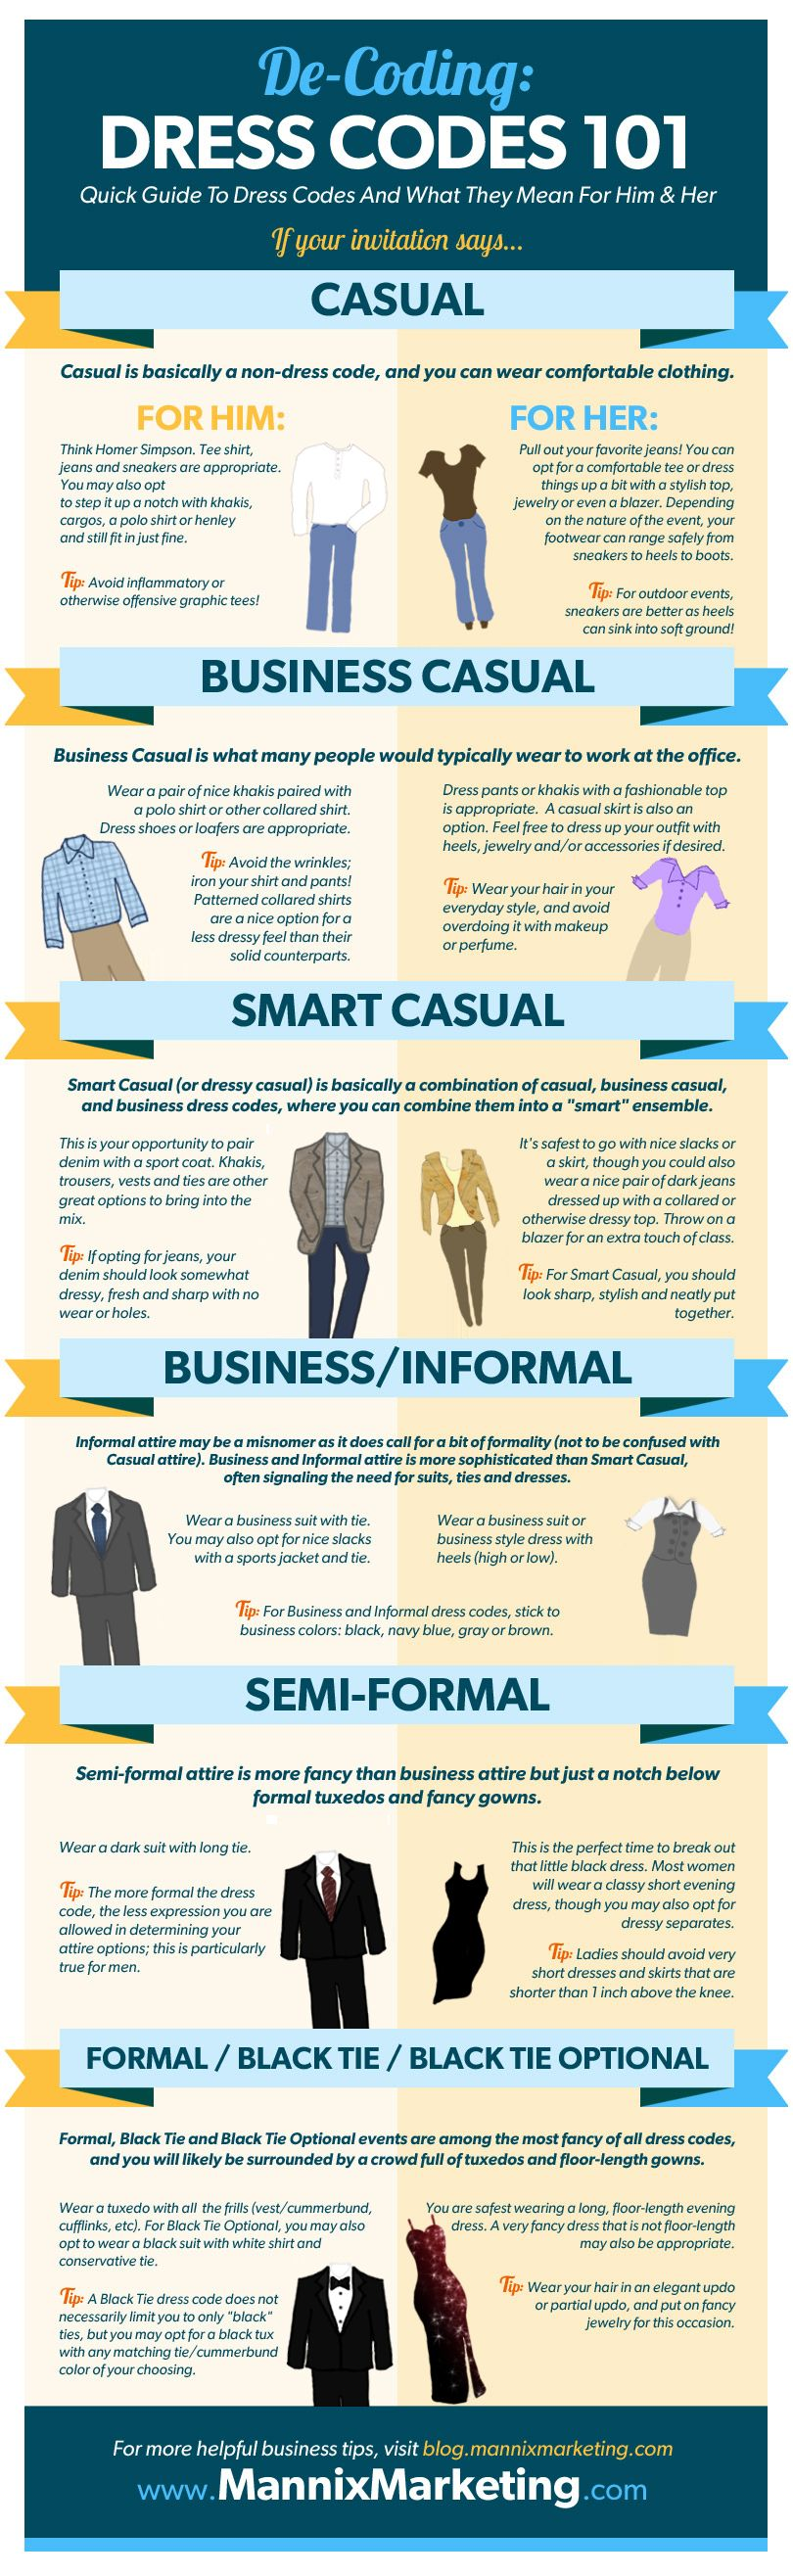 1438877606-business-casual-infographic-dress-codes.jpg 810×2.631 piksel